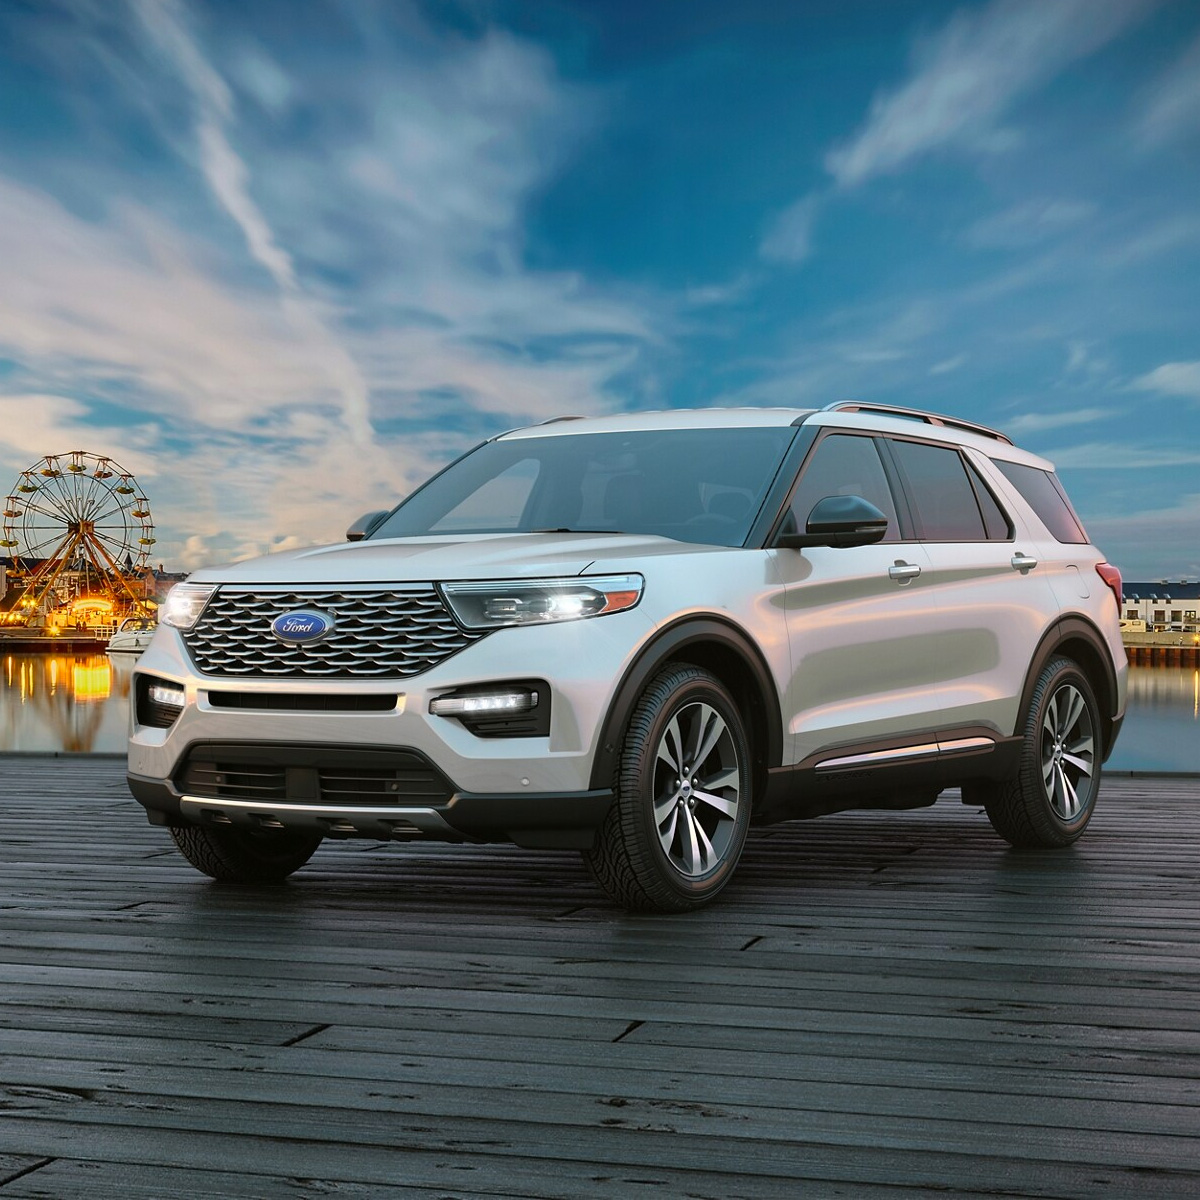 Silver 2021 Ford Explorer parked on a pier with a ferris wheel in the background